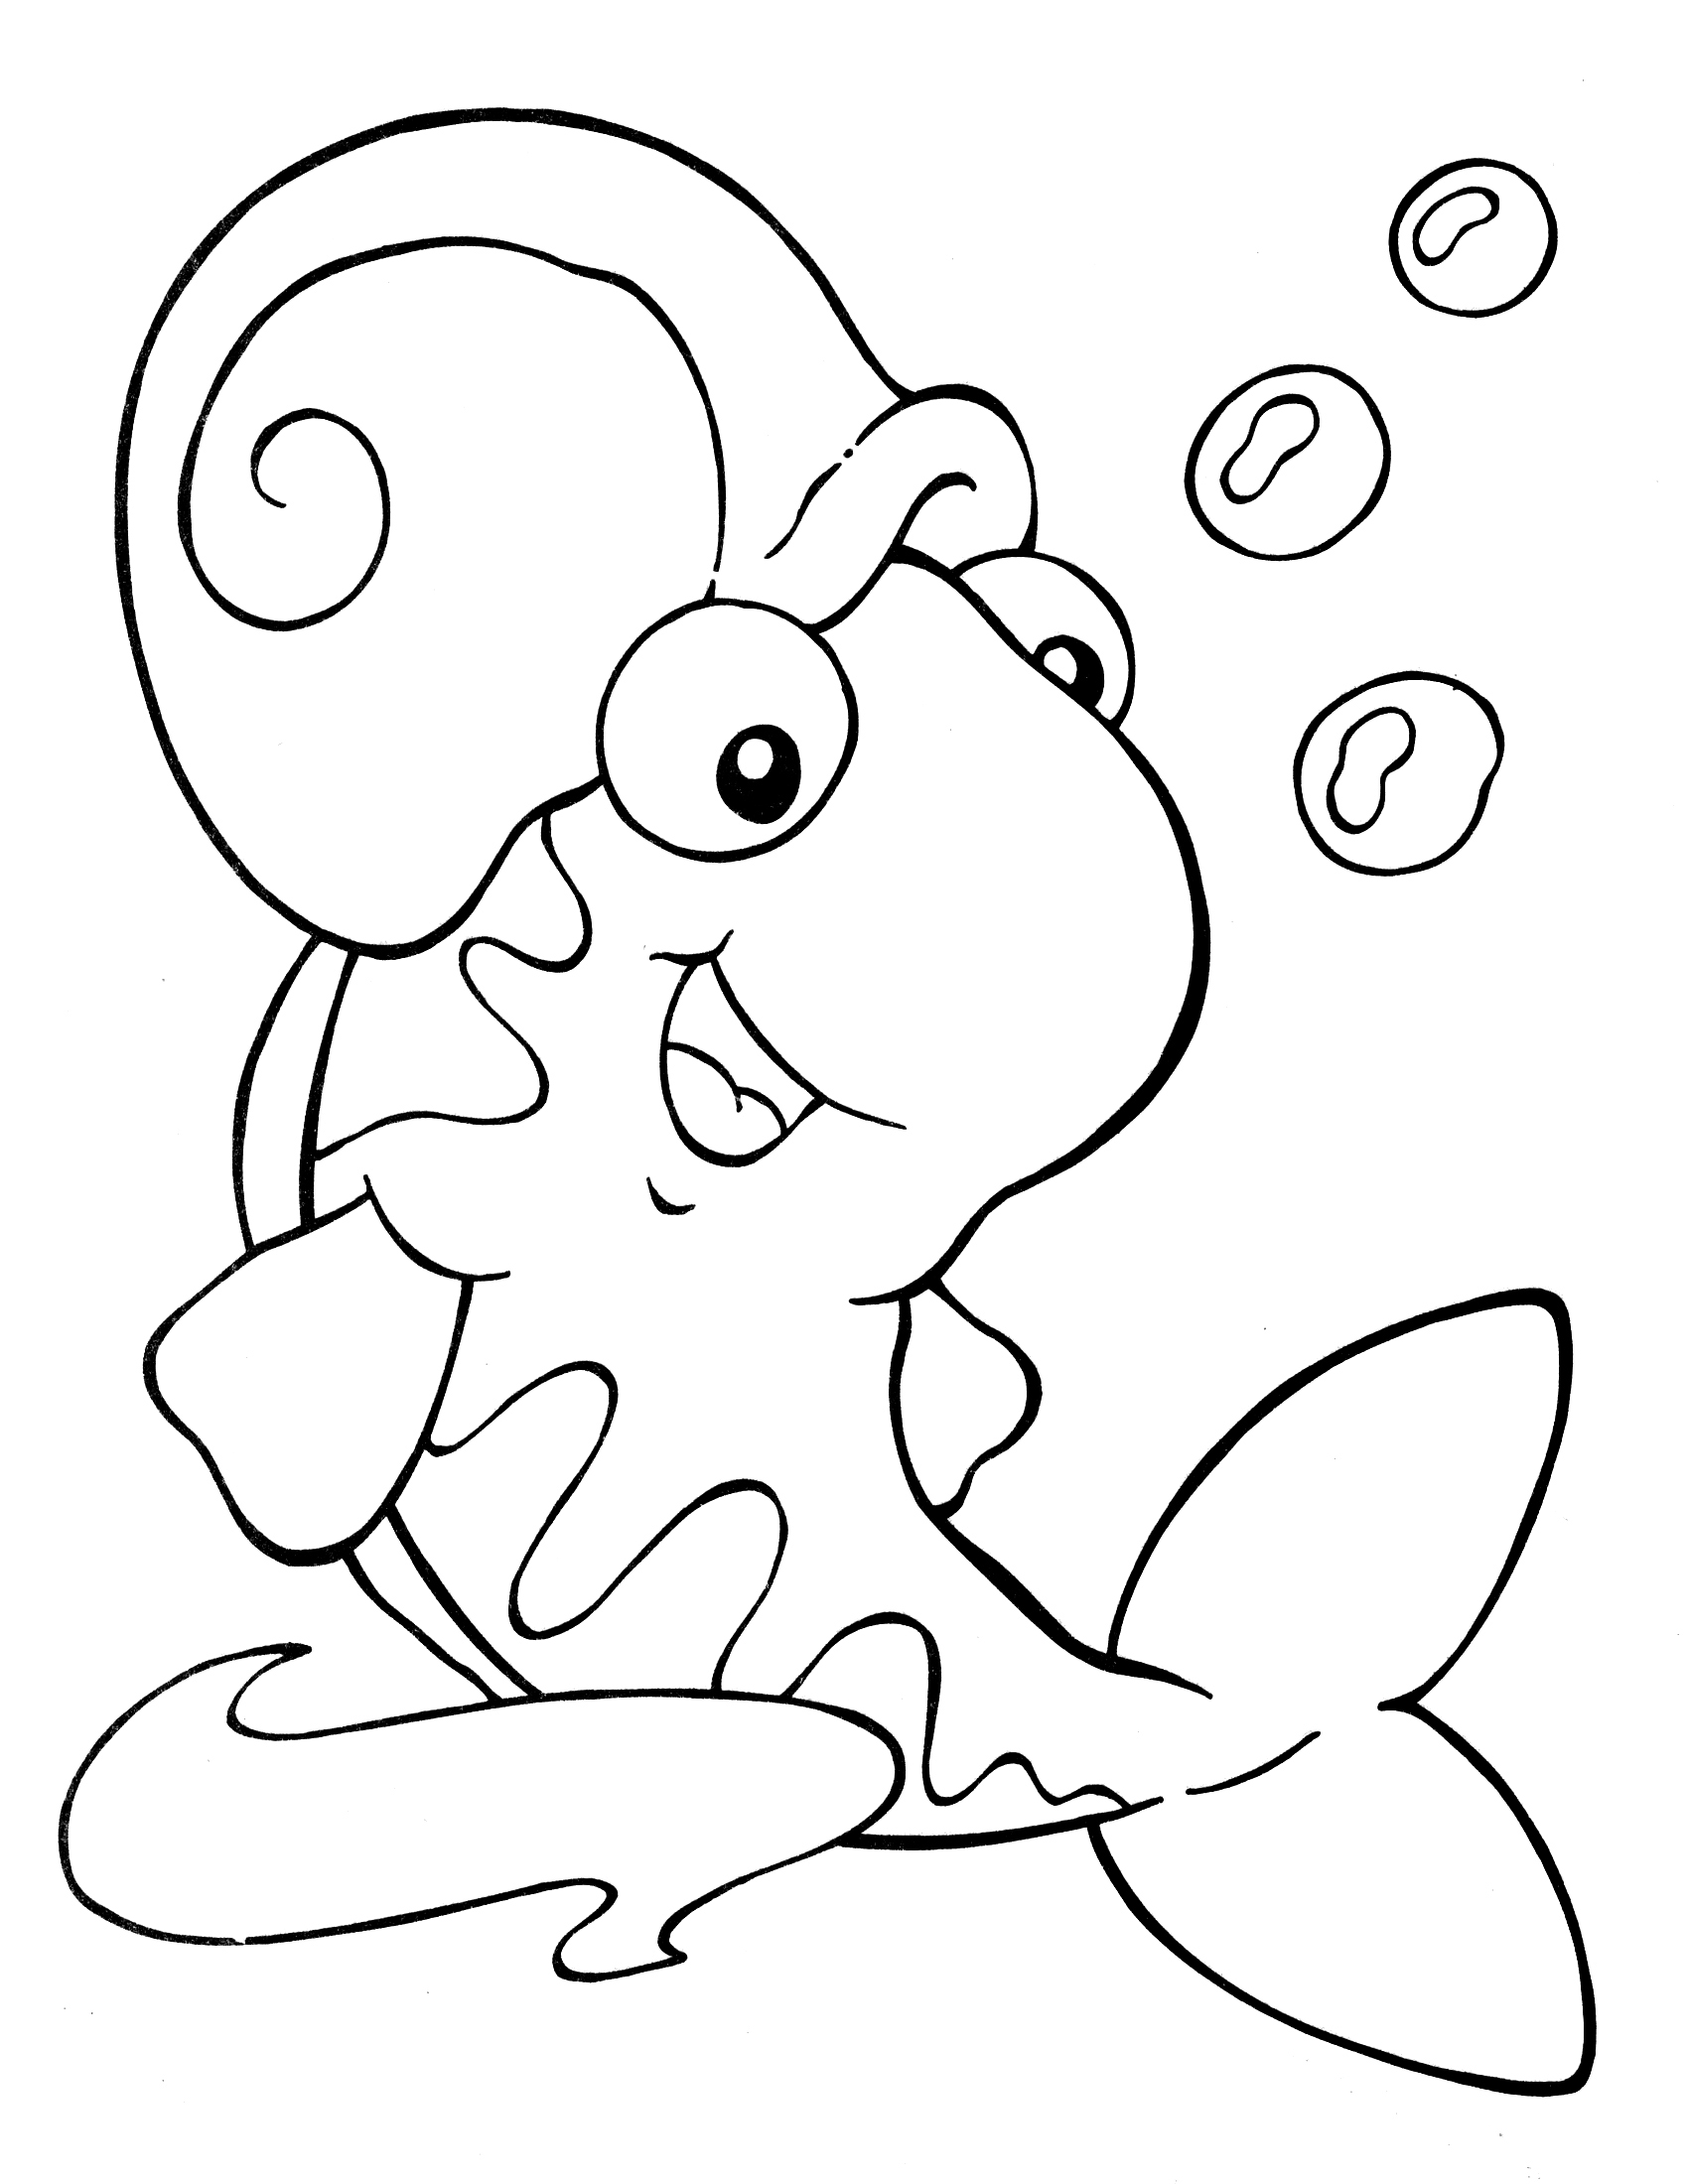 coloring pages from crayola - photo#5